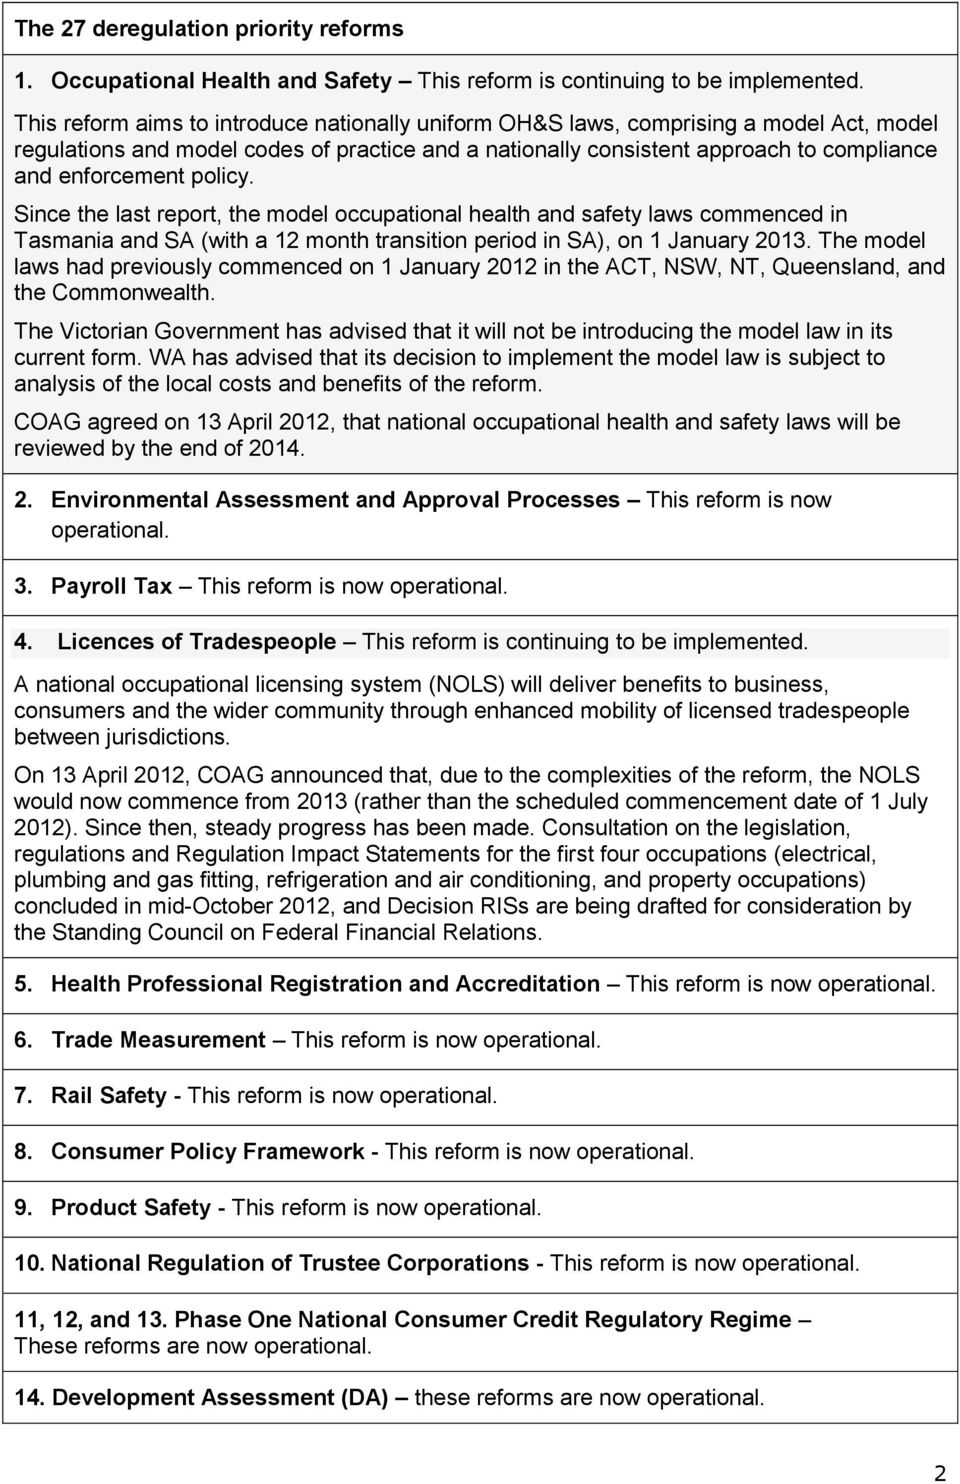 policy. Since the last report, the model occupational health and safety laws commenced in Tasmania and SA (with a 12 month transition period in SA), on 1 January 2013.